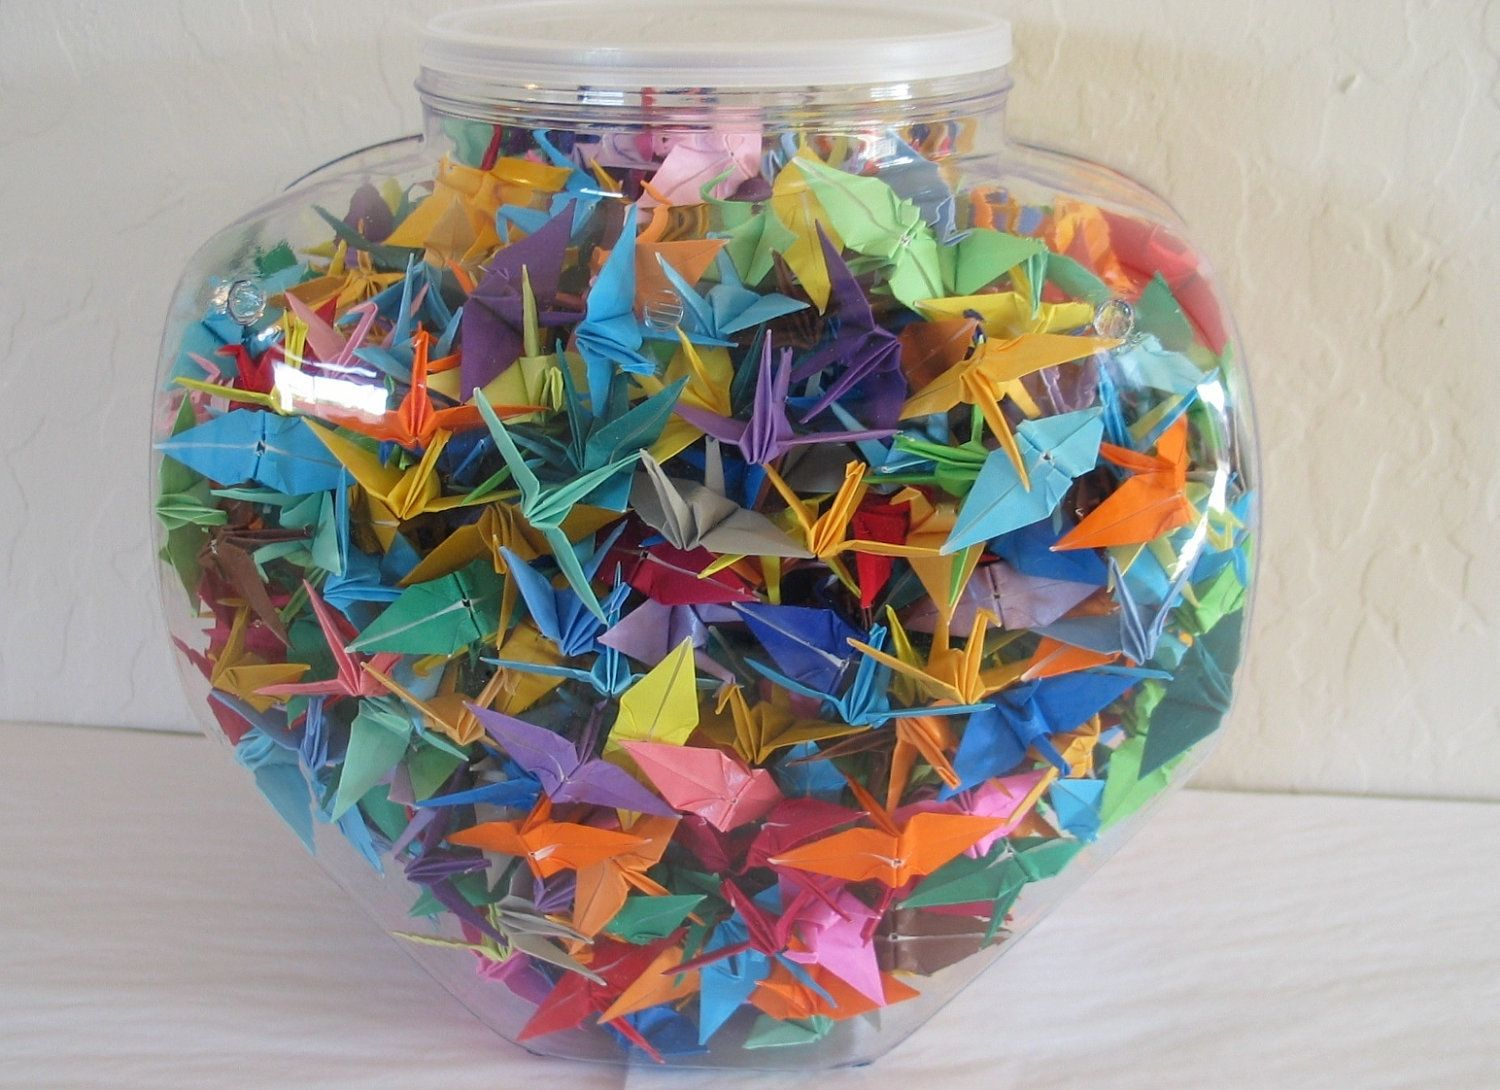 Origami crane crane origami craft ideas - Finally Have An Idea Of How To Display All The Cranes From My Wedding Origami